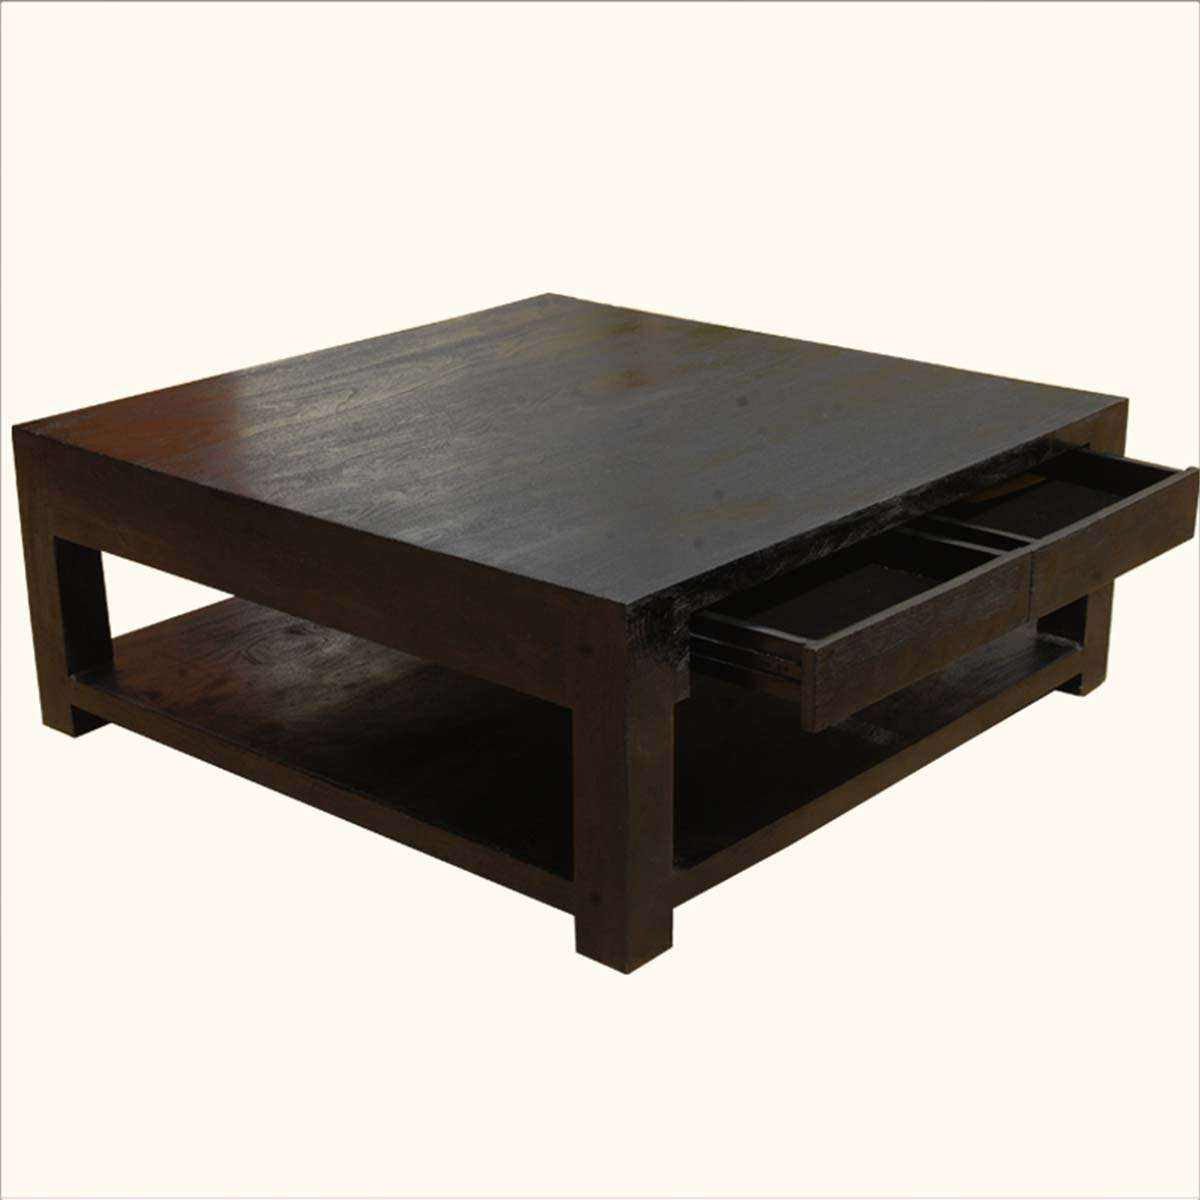 Excellent Square Coffee Tables With Storage Pictures Decoration Throughout Recent Dark Wood Square Coffee Tables (View 11 of 20)